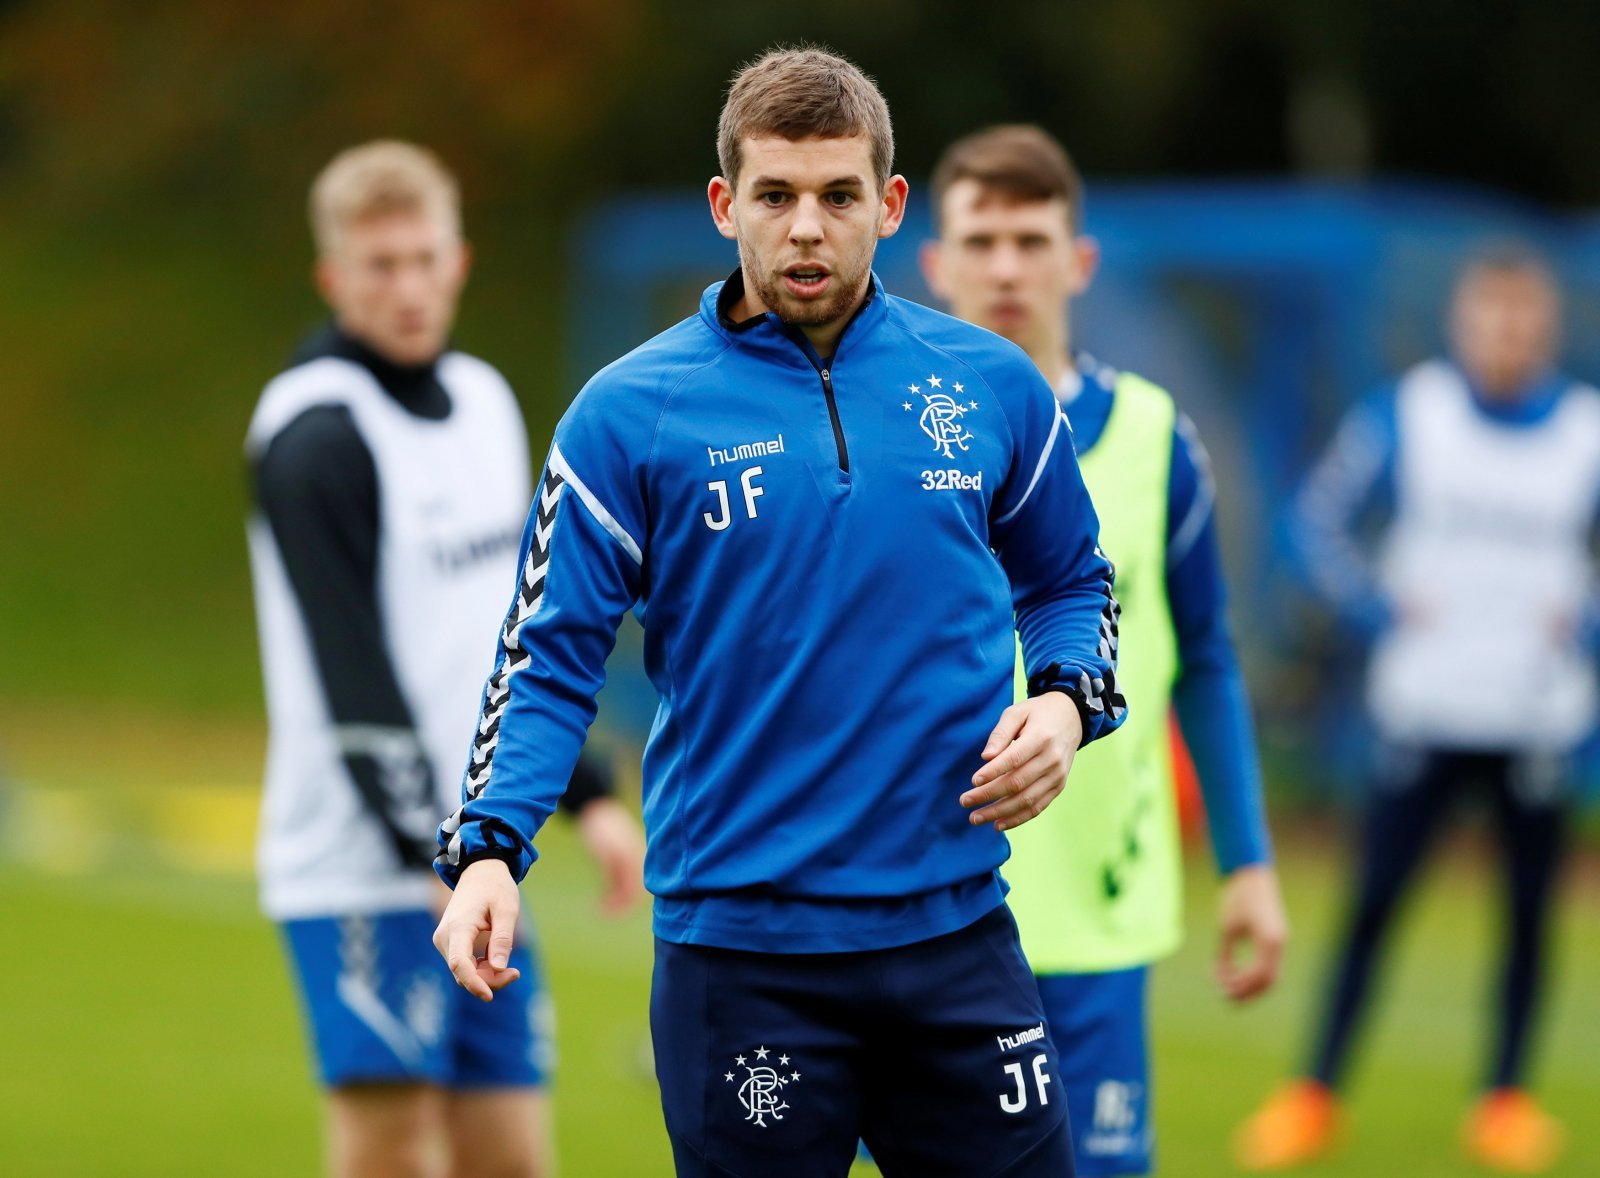 Plenty of Rangers fans were furious with Jon Flanagan's performance against Kilmarnock